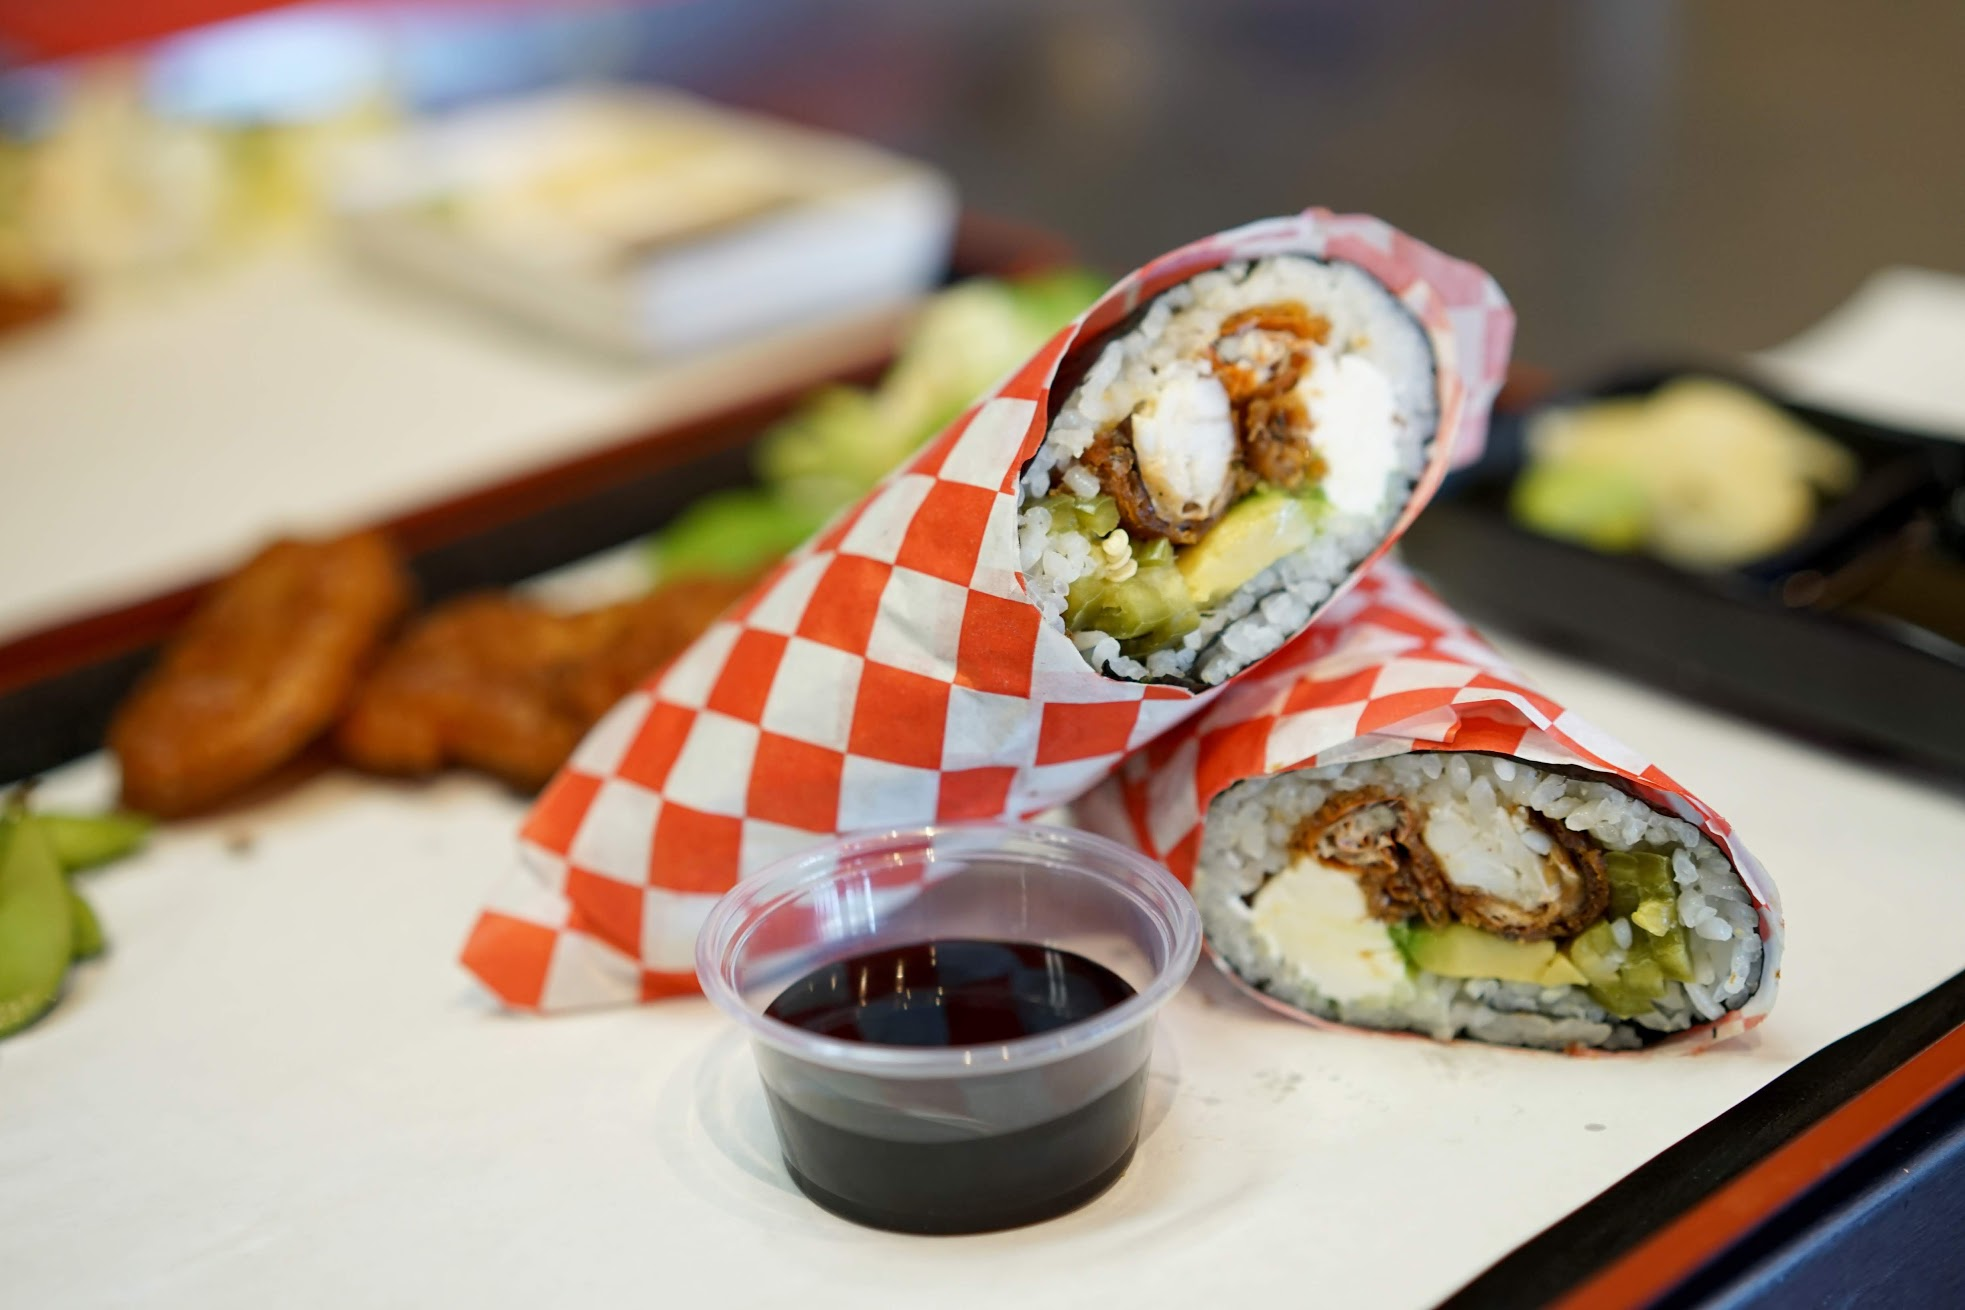 Make Your Own Sushi Burrito with soft shelled crab, cream cheese, avocado, and pickled jalapeños.